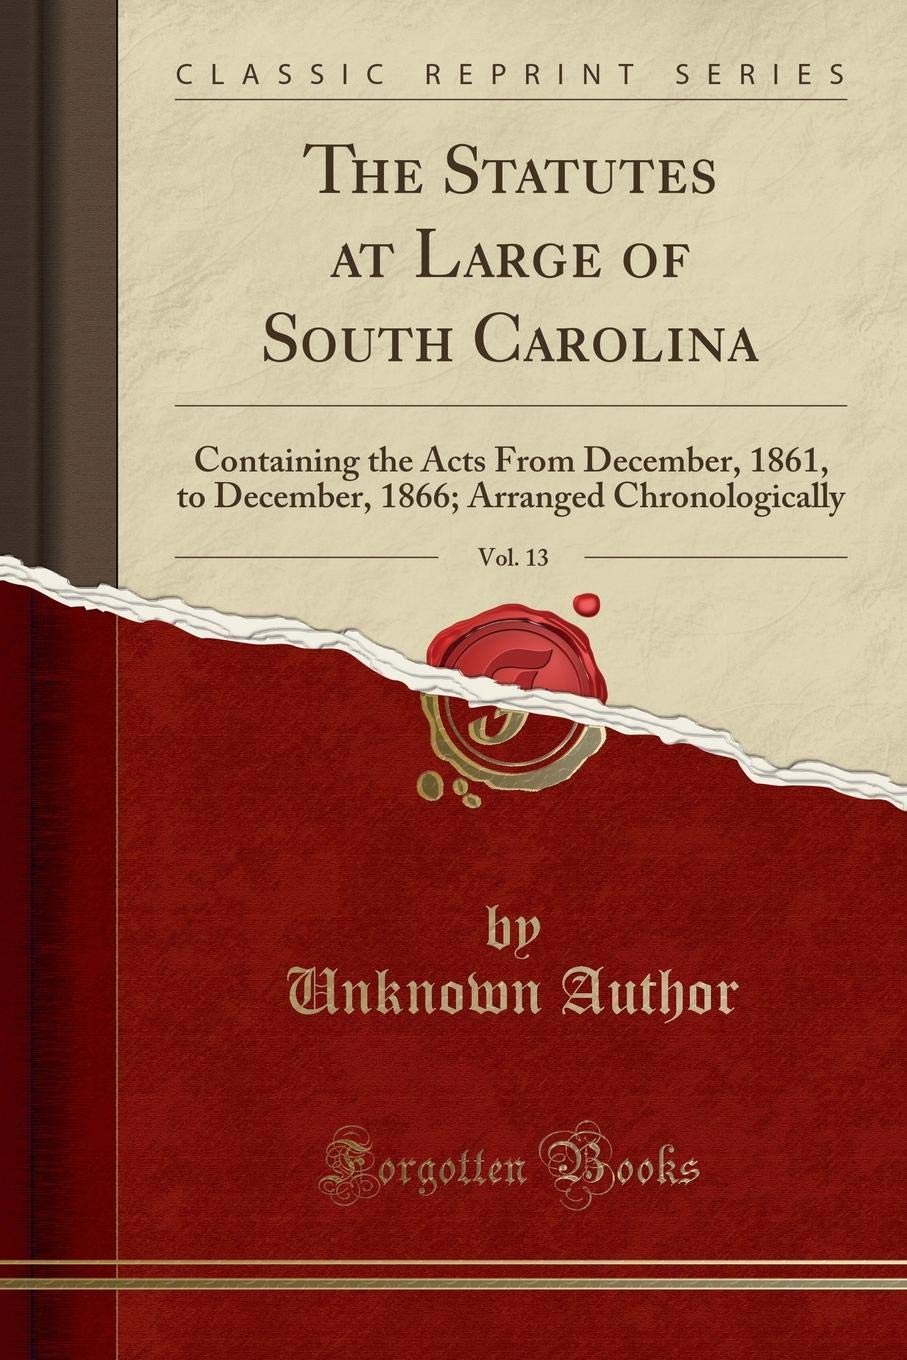 Download The Statutes at Large of South Carolina, Vol. 13: Containing the Acts From December, 1861, to December, 1866; Arranged Chronologically (Classic Reprint) PDF